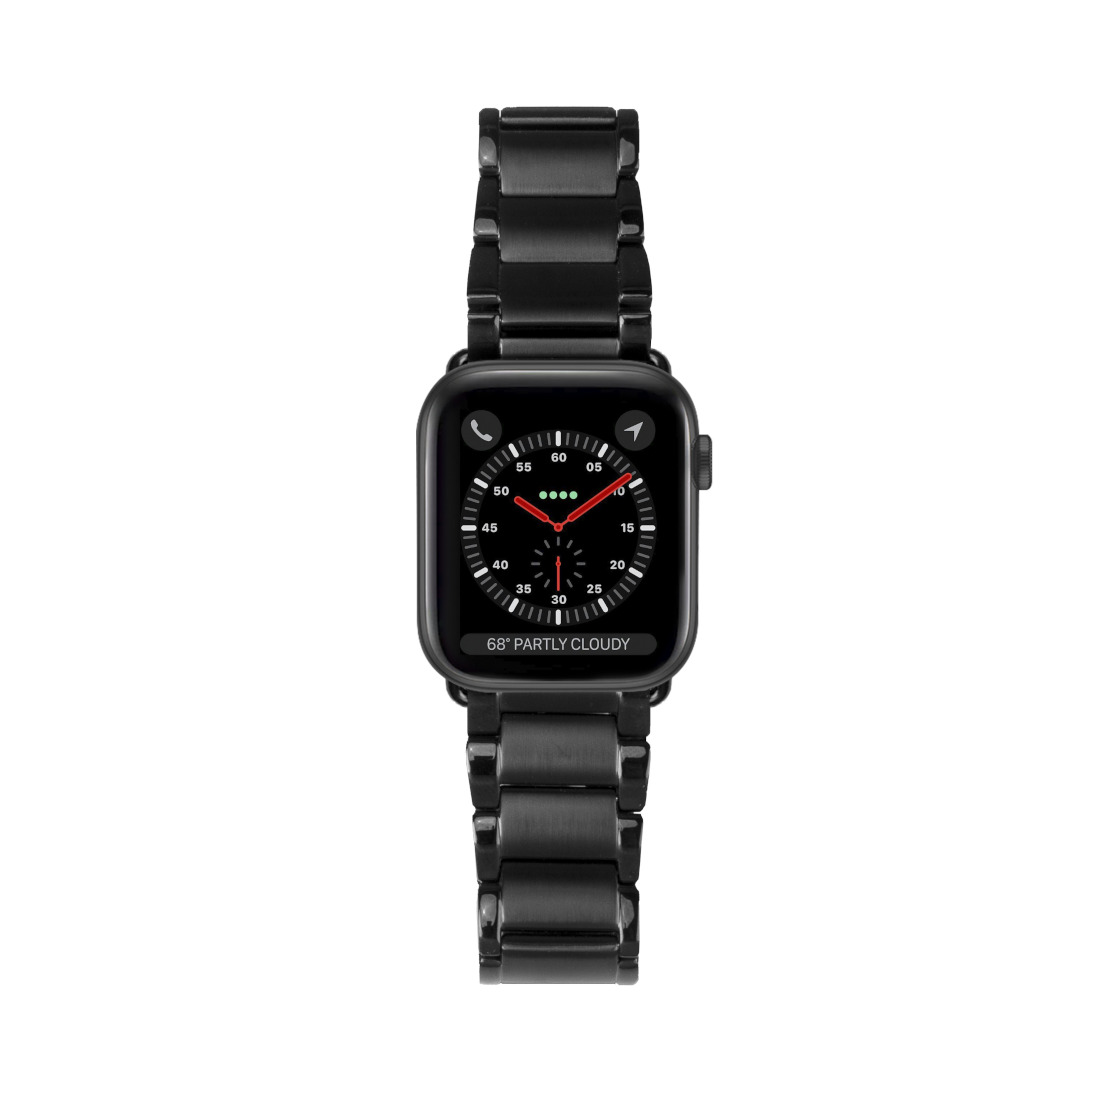 Apple Watch Band - Link Bracelet Band (38mm/40mm) - Black